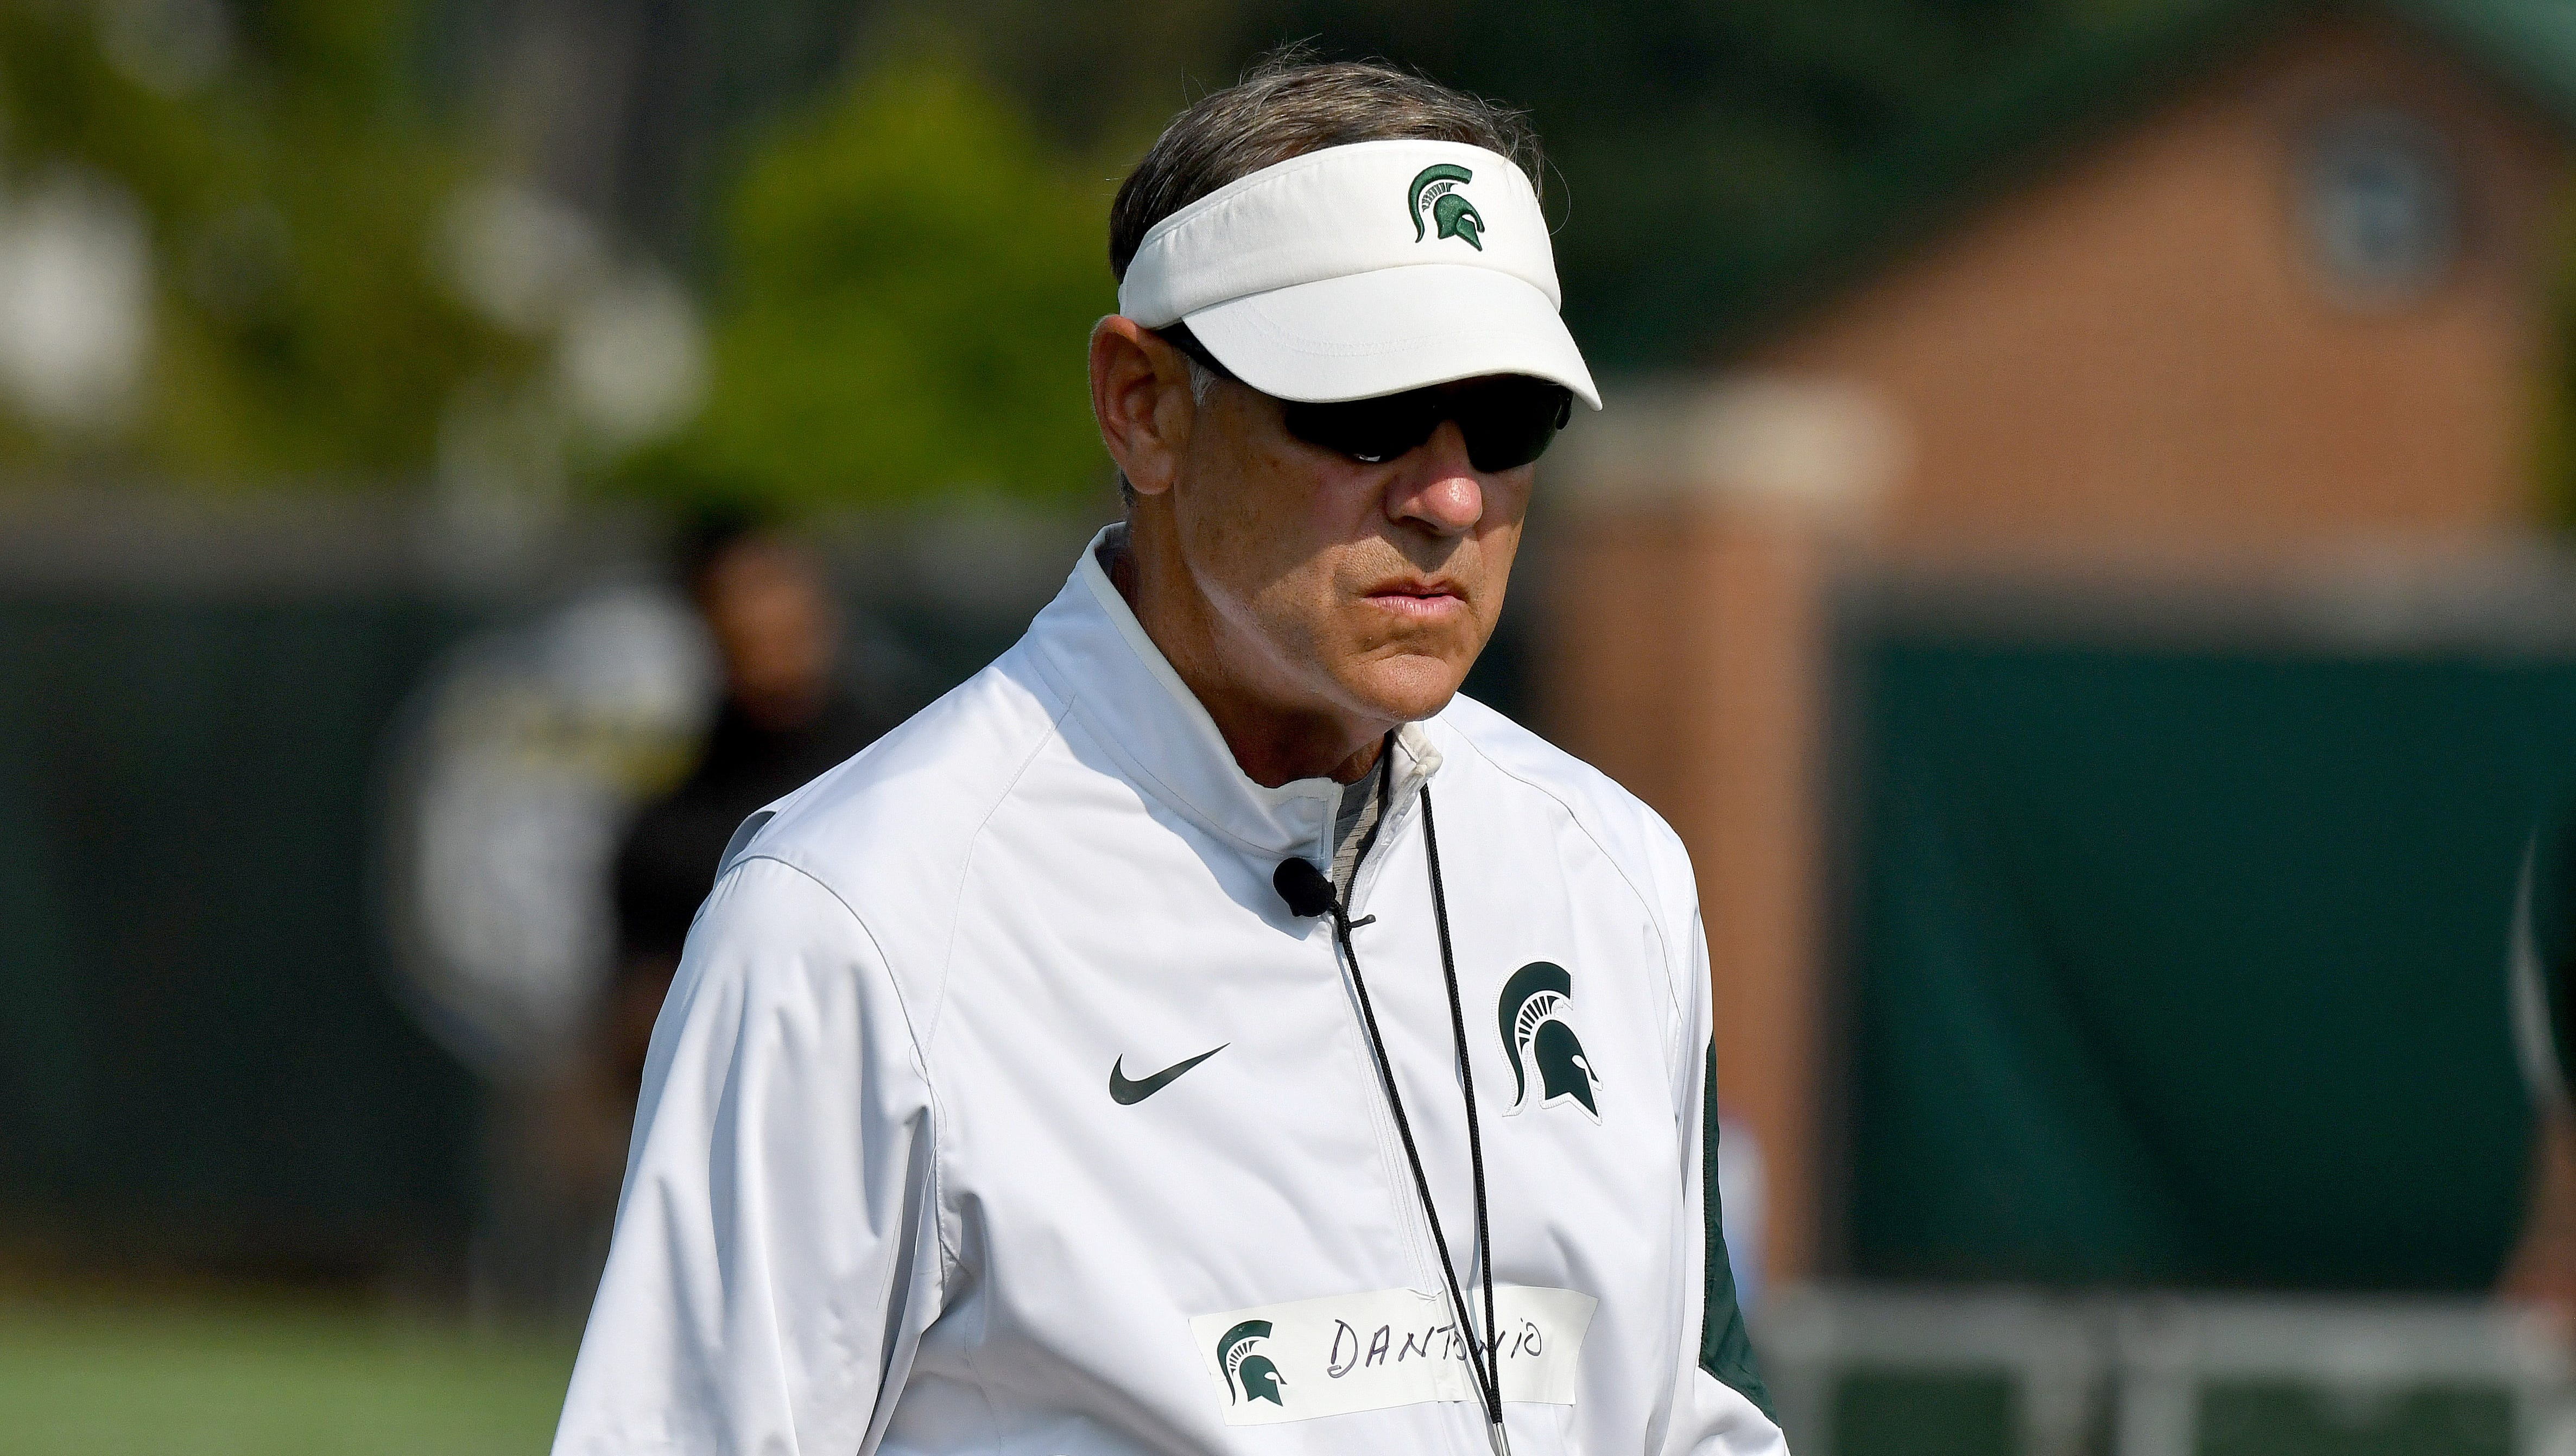 MSU coach Mark Dantonio says coming back from night games on the road takes a toll on you for the rest of the week.